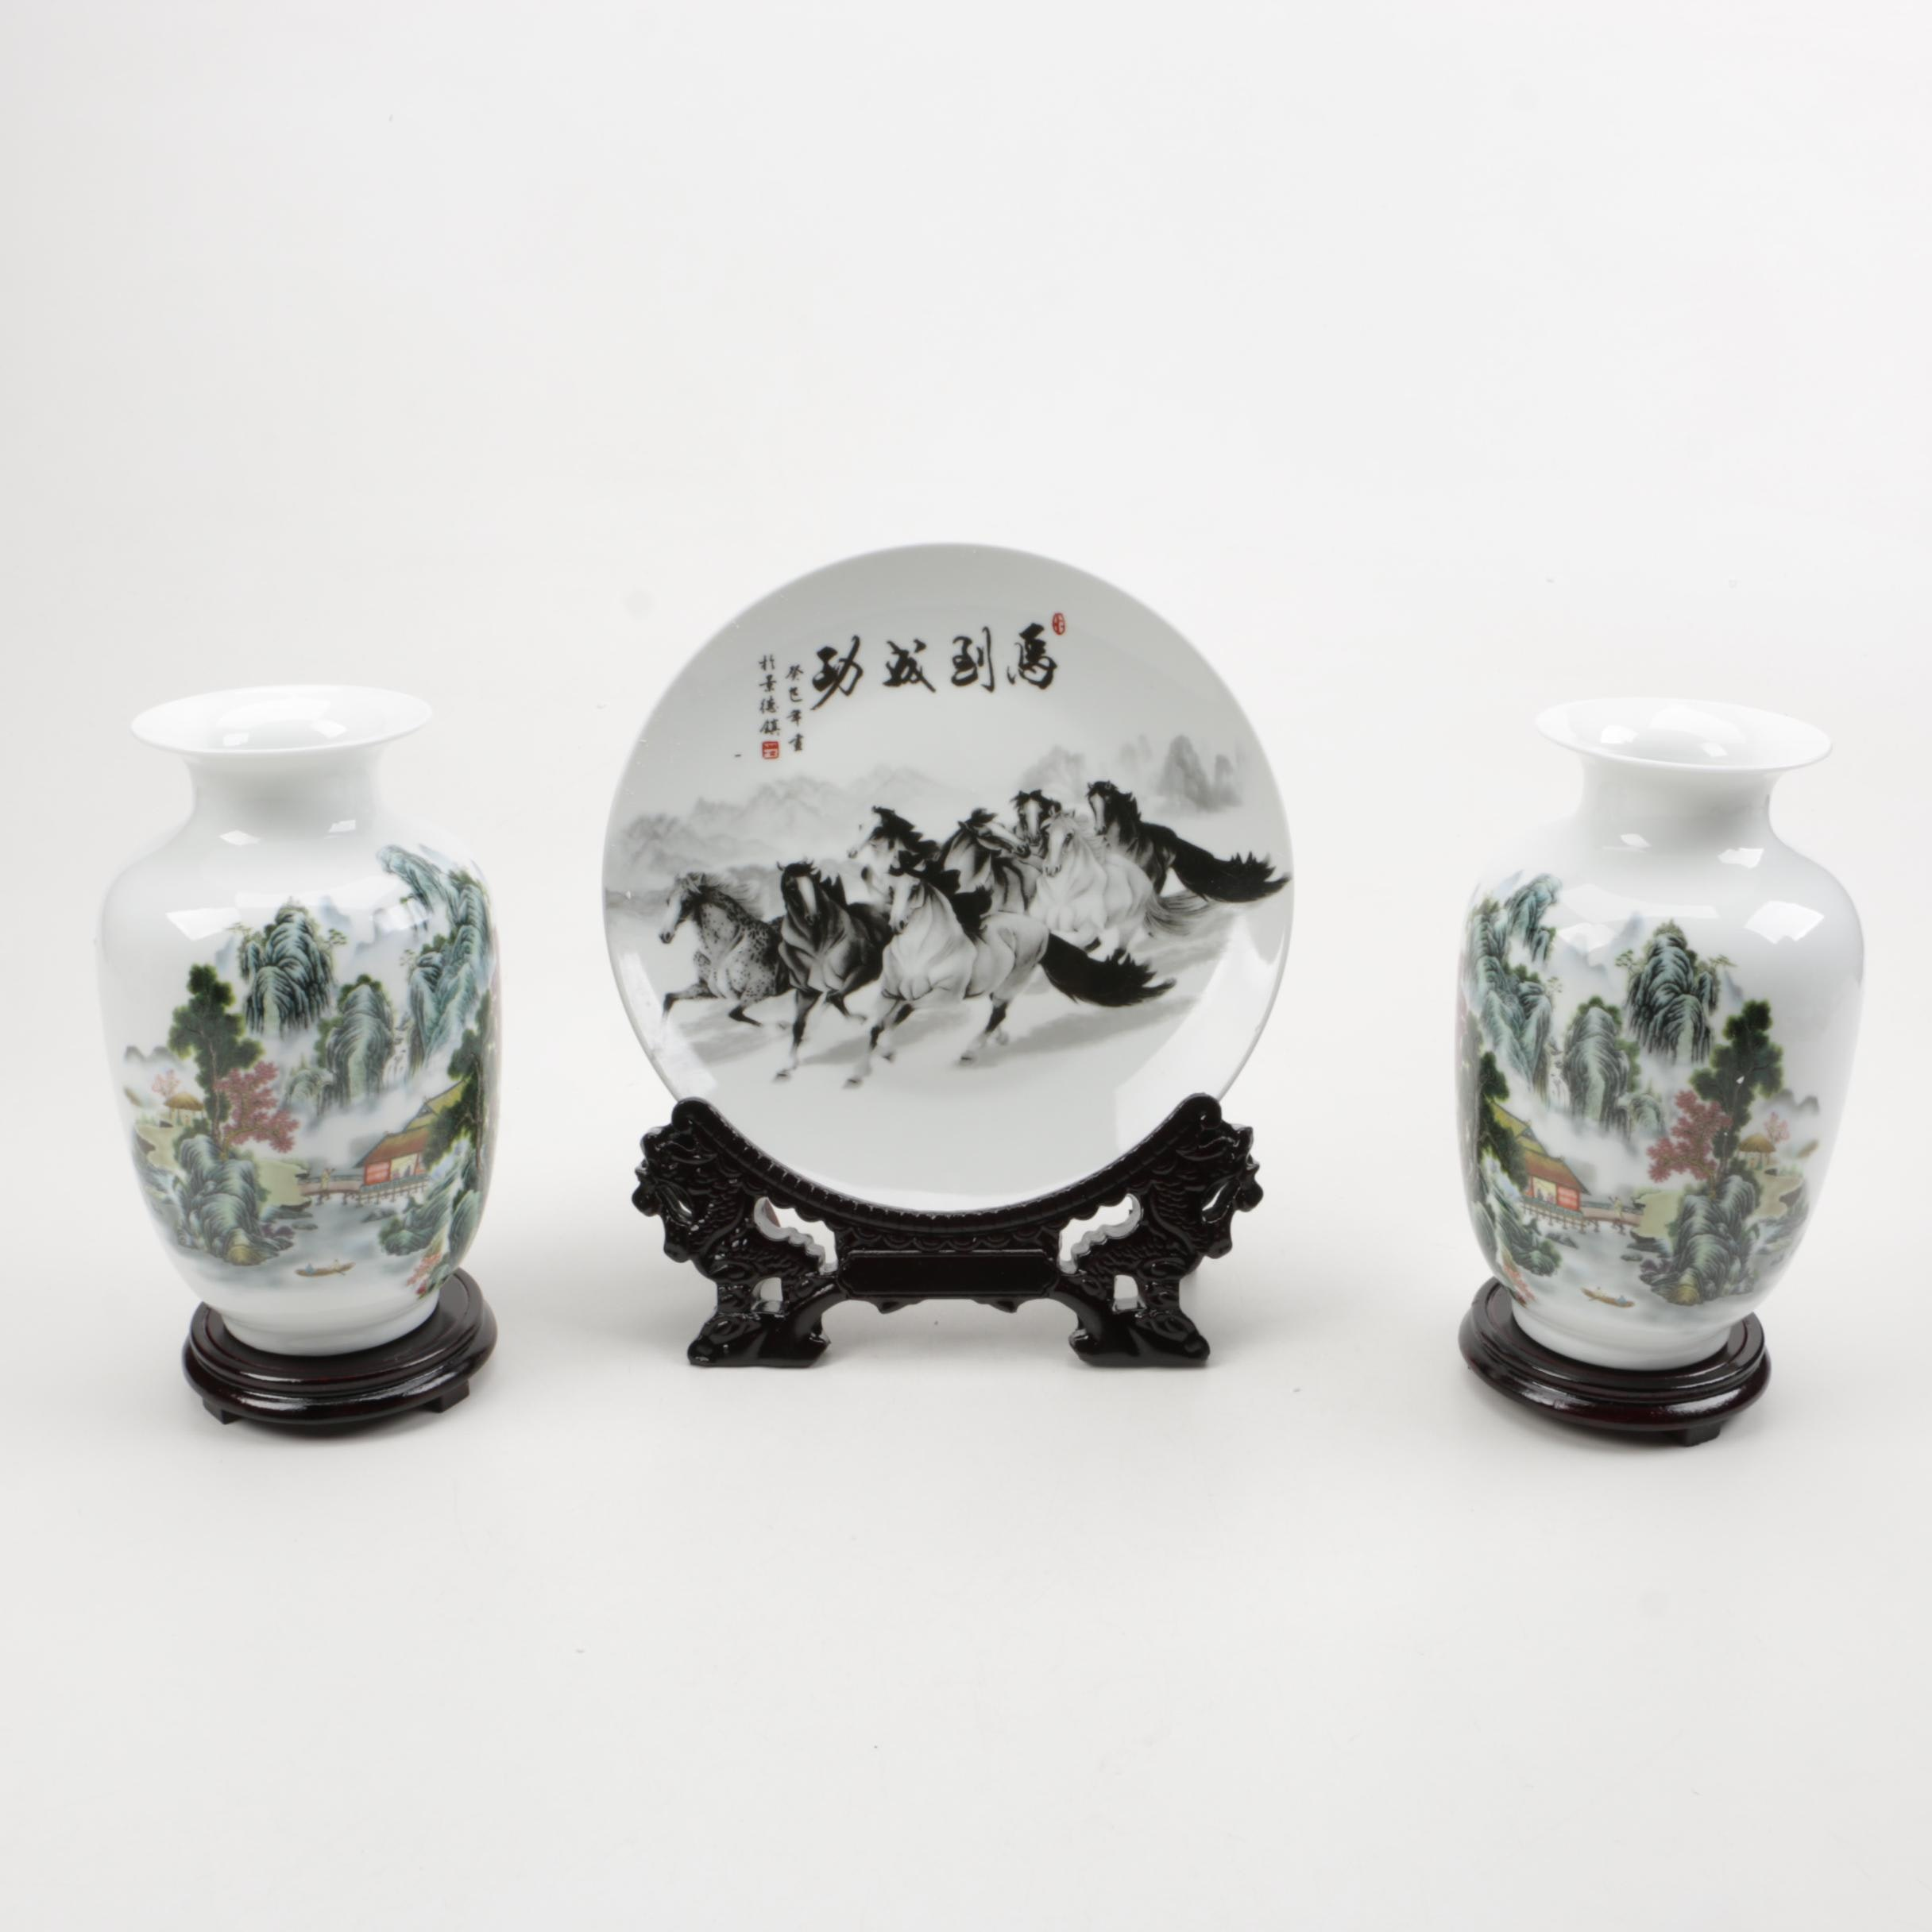 Chinese Porcelain Vases and Plate